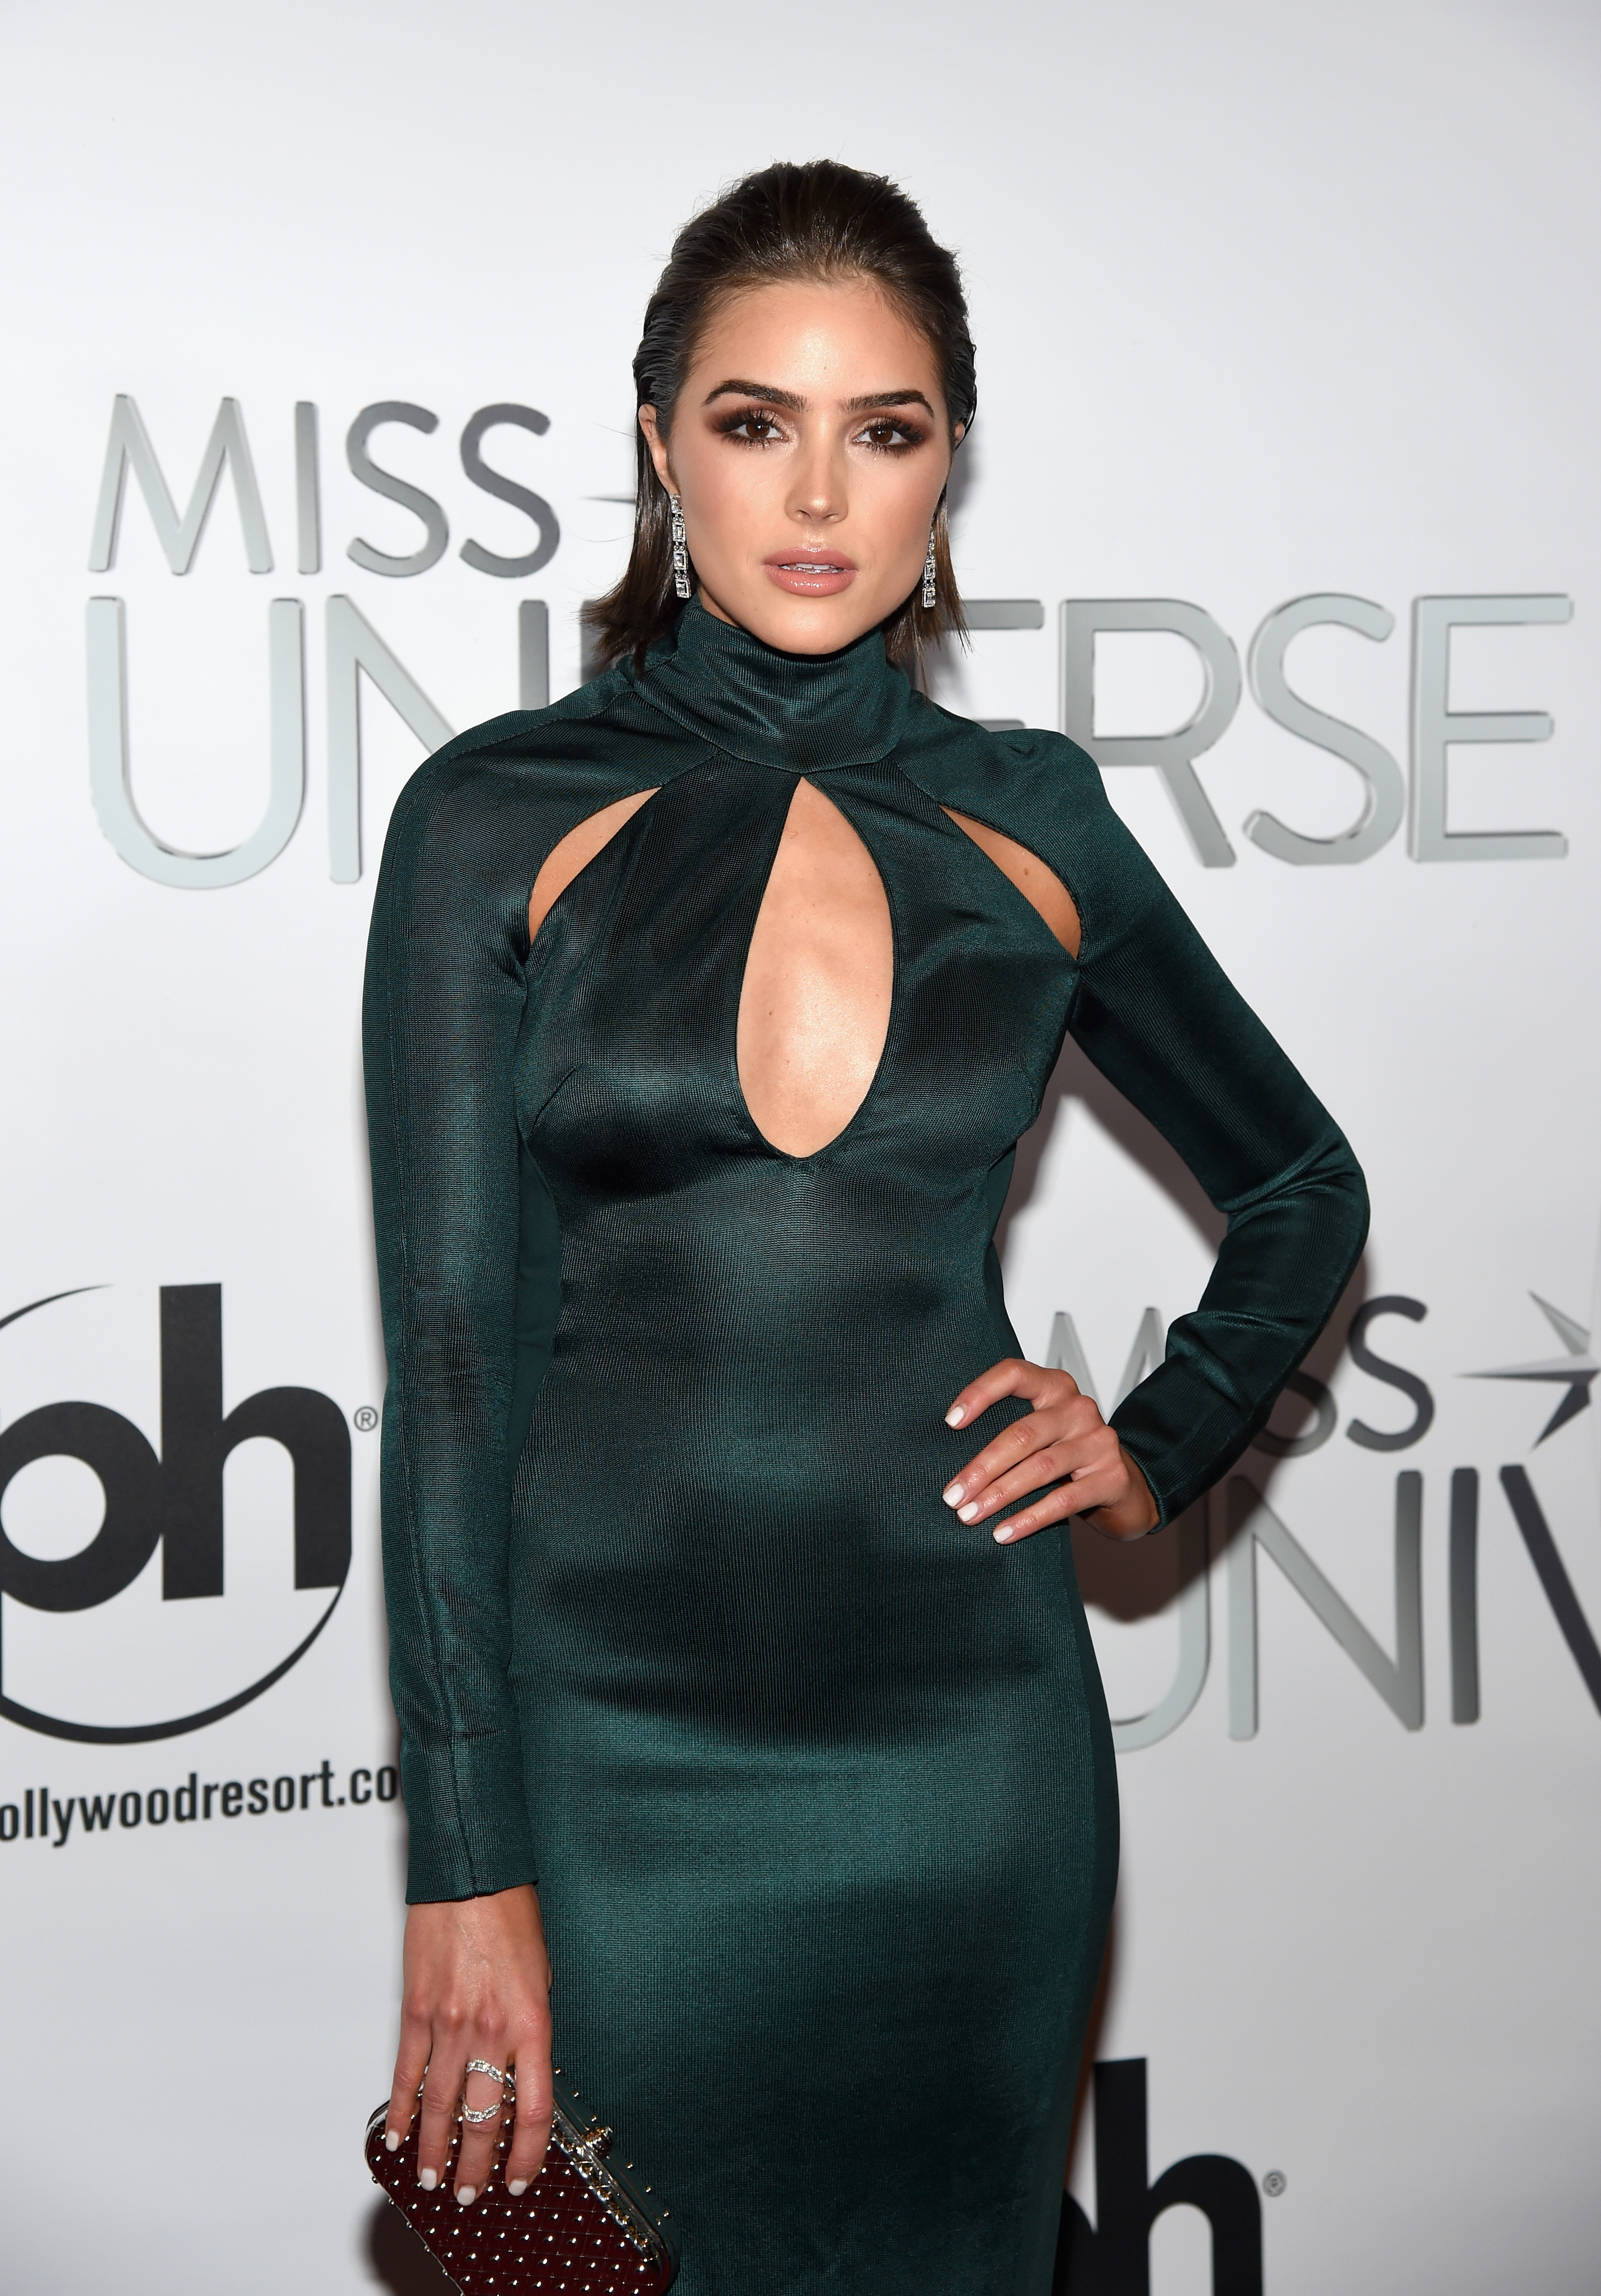 Olivia Culpo At Miss Universe 2015 Stunned In Emerald